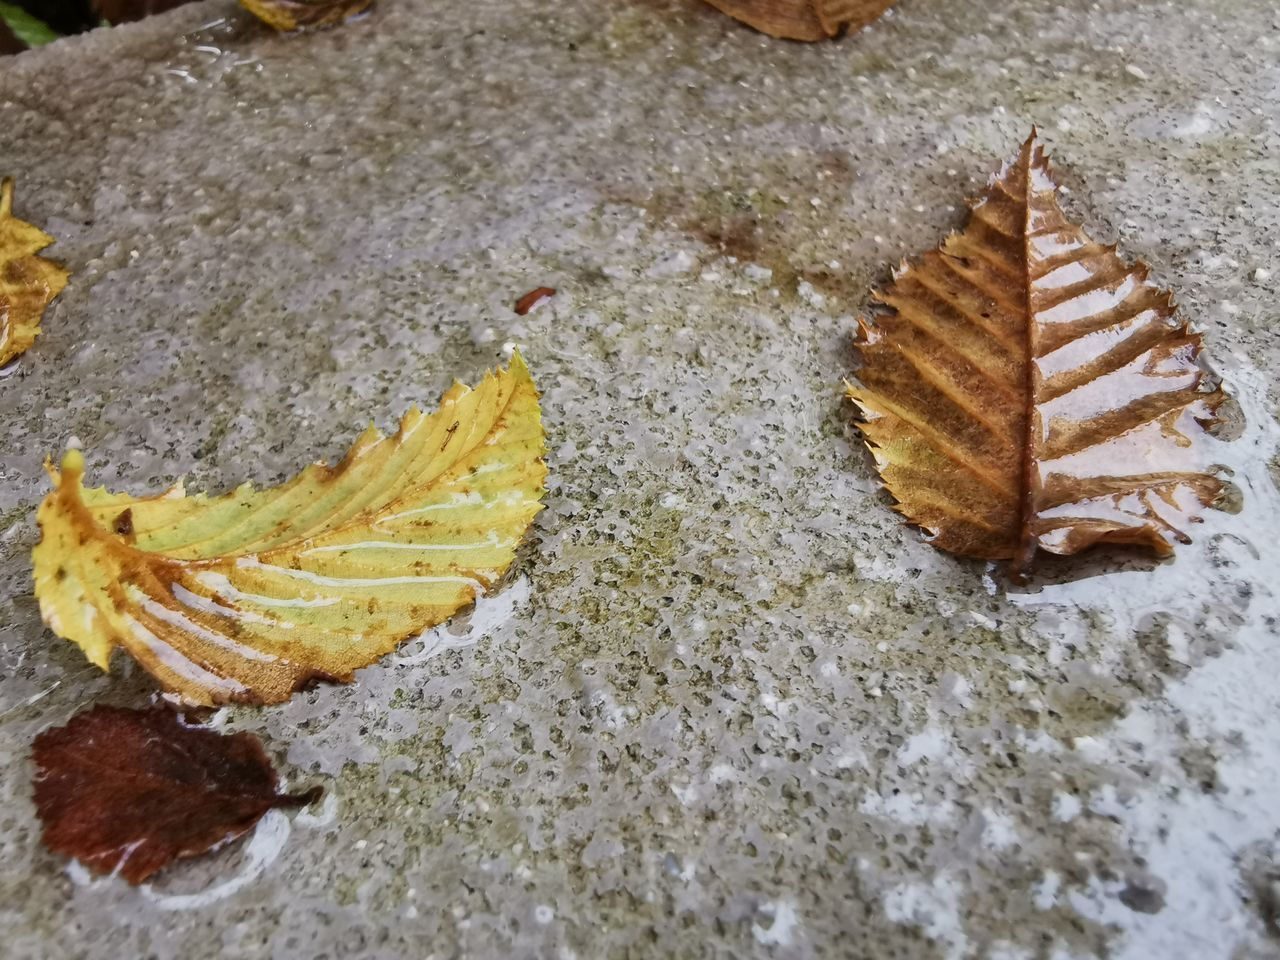 no people, leaf, close-up, plant part, high angle view, nature, food and drink, food, still life, day, autumn, outdoors, land, dry, plant, pattern, beauty in nature, brown, selective focus, leaves, temptation